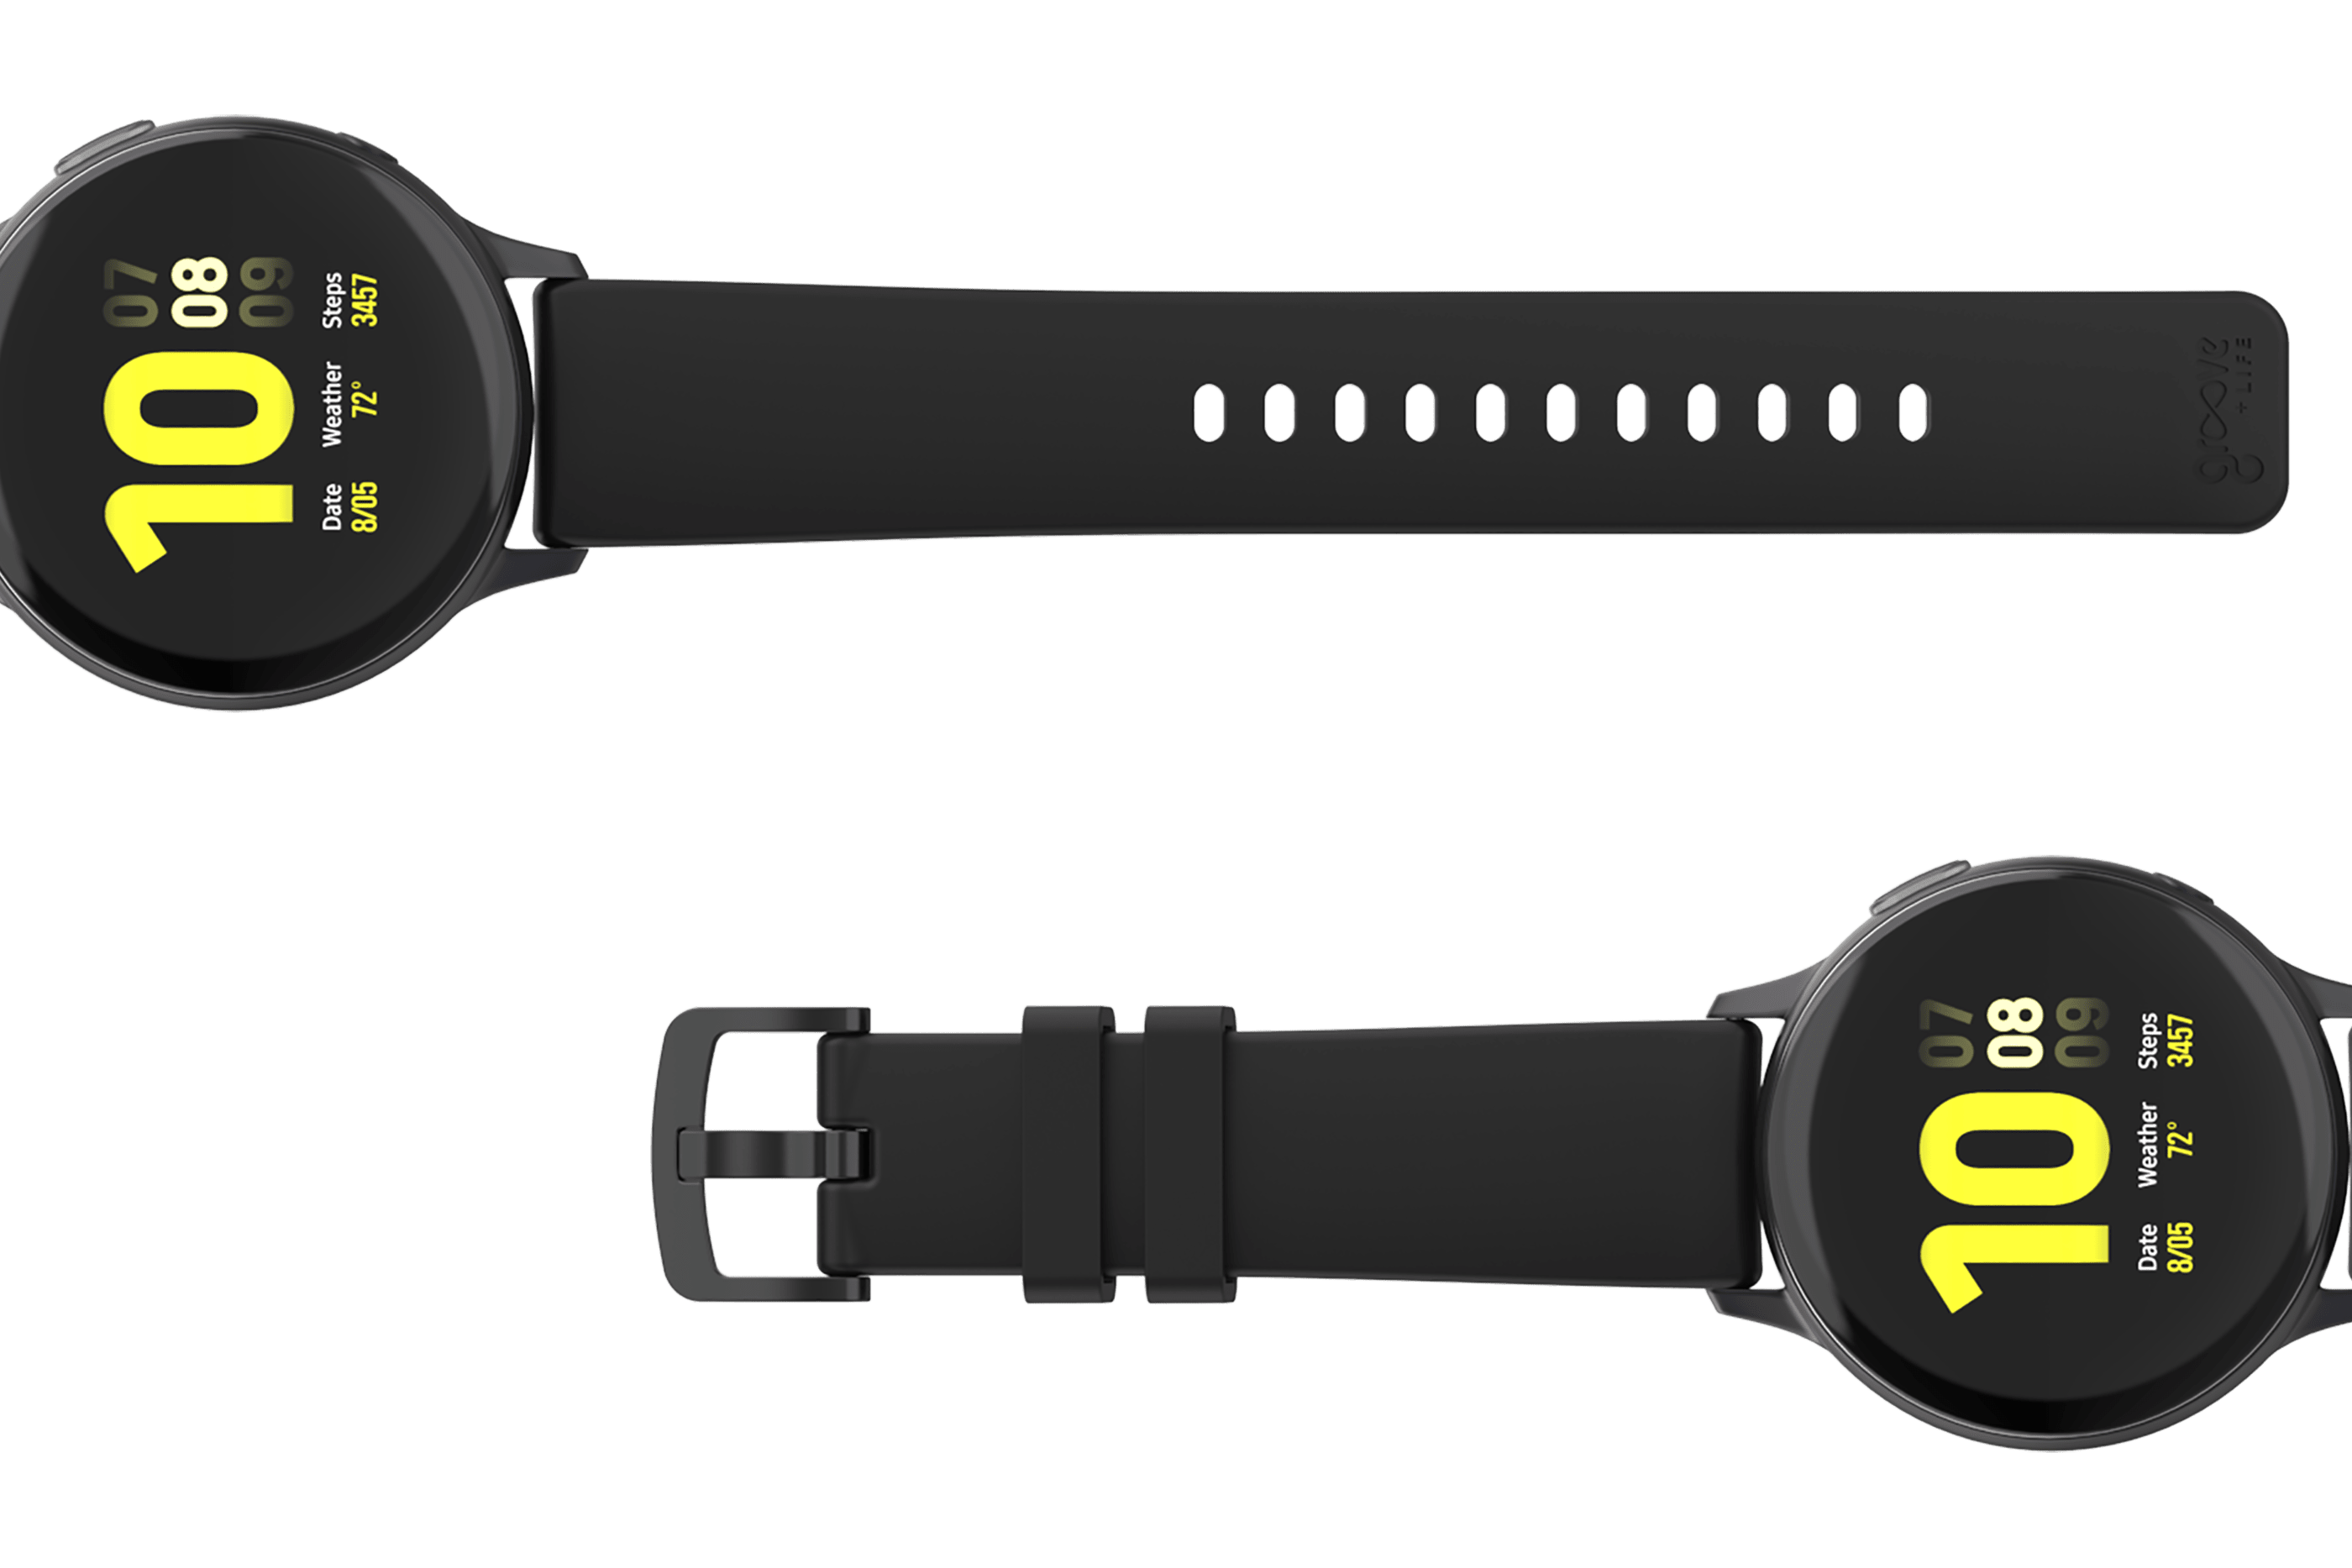 Solid Black 20mm watch band viewed top down